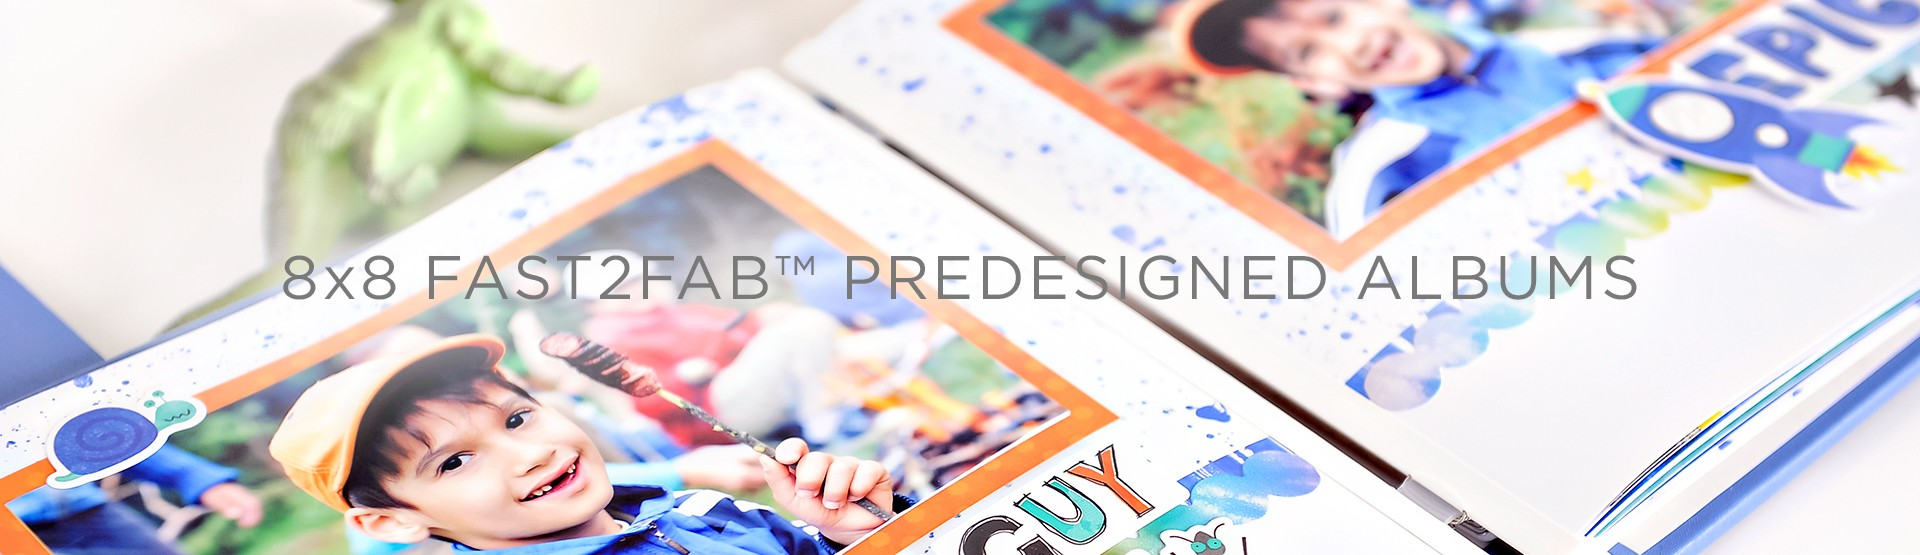 8x8 Fast2Fab Predesigned Albums